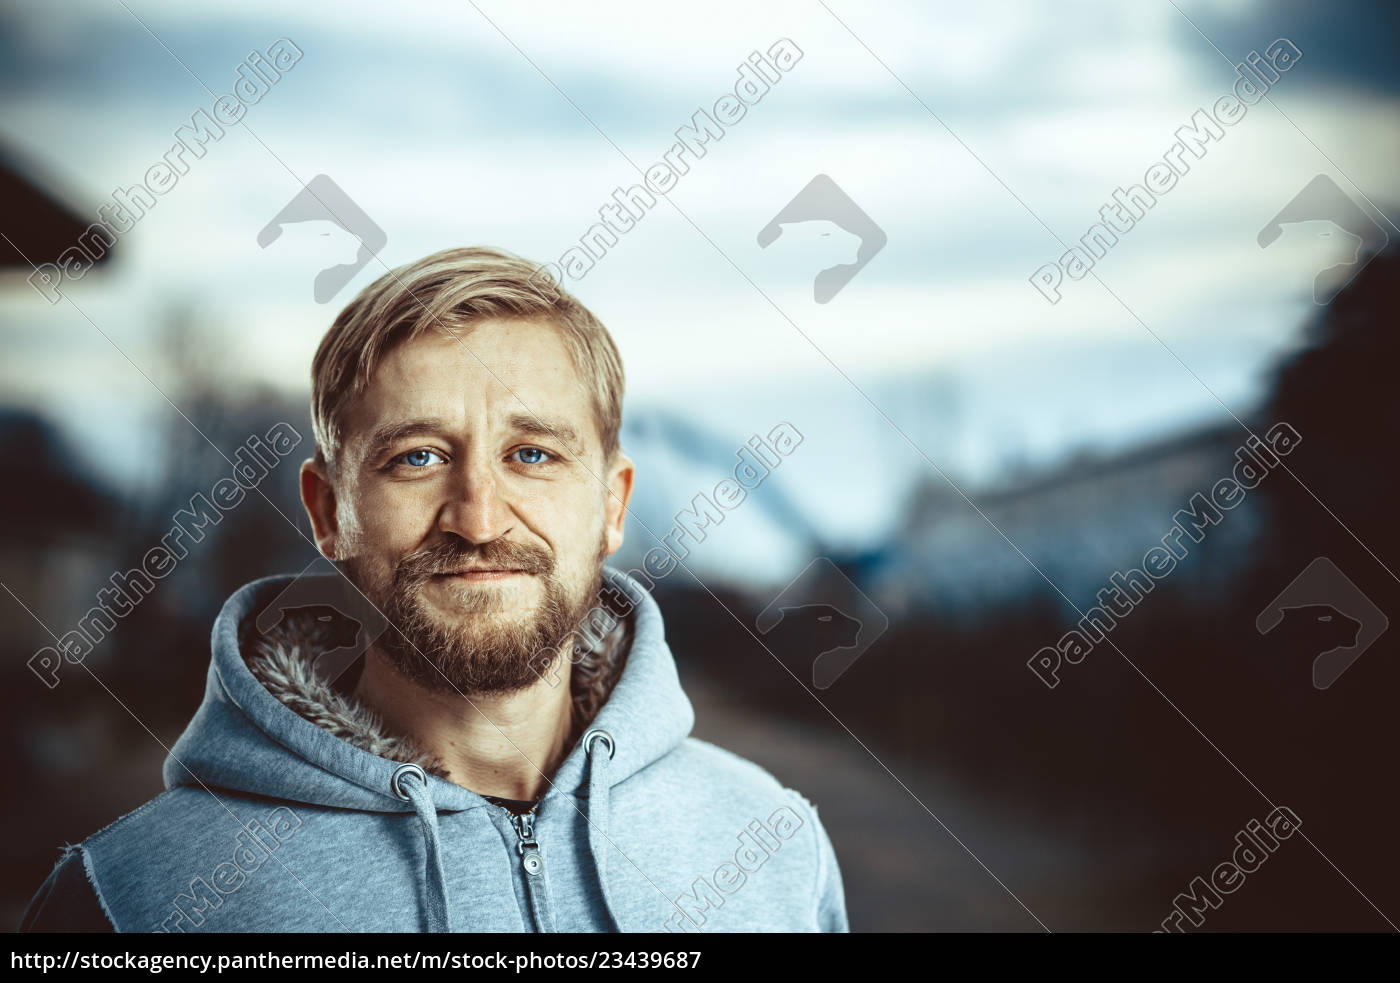 portrait, of, a, young, bearded, man - 23439687